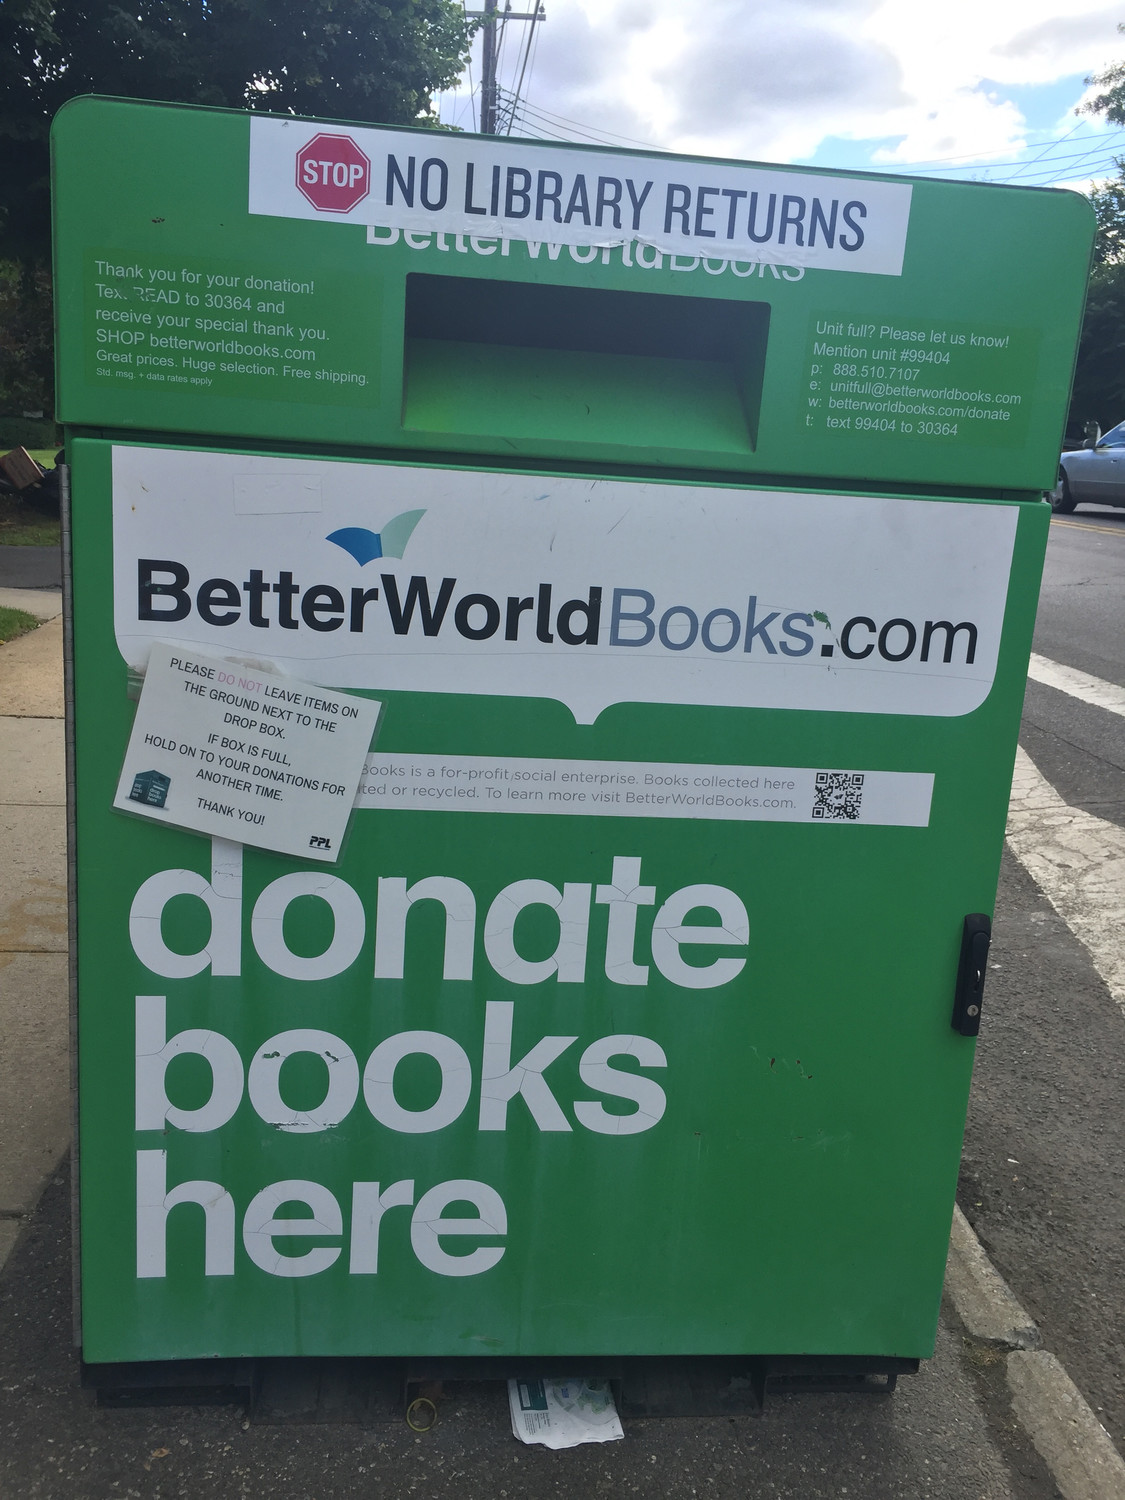 Better World Books has been collecting used and new books for sale or donation since 2002.